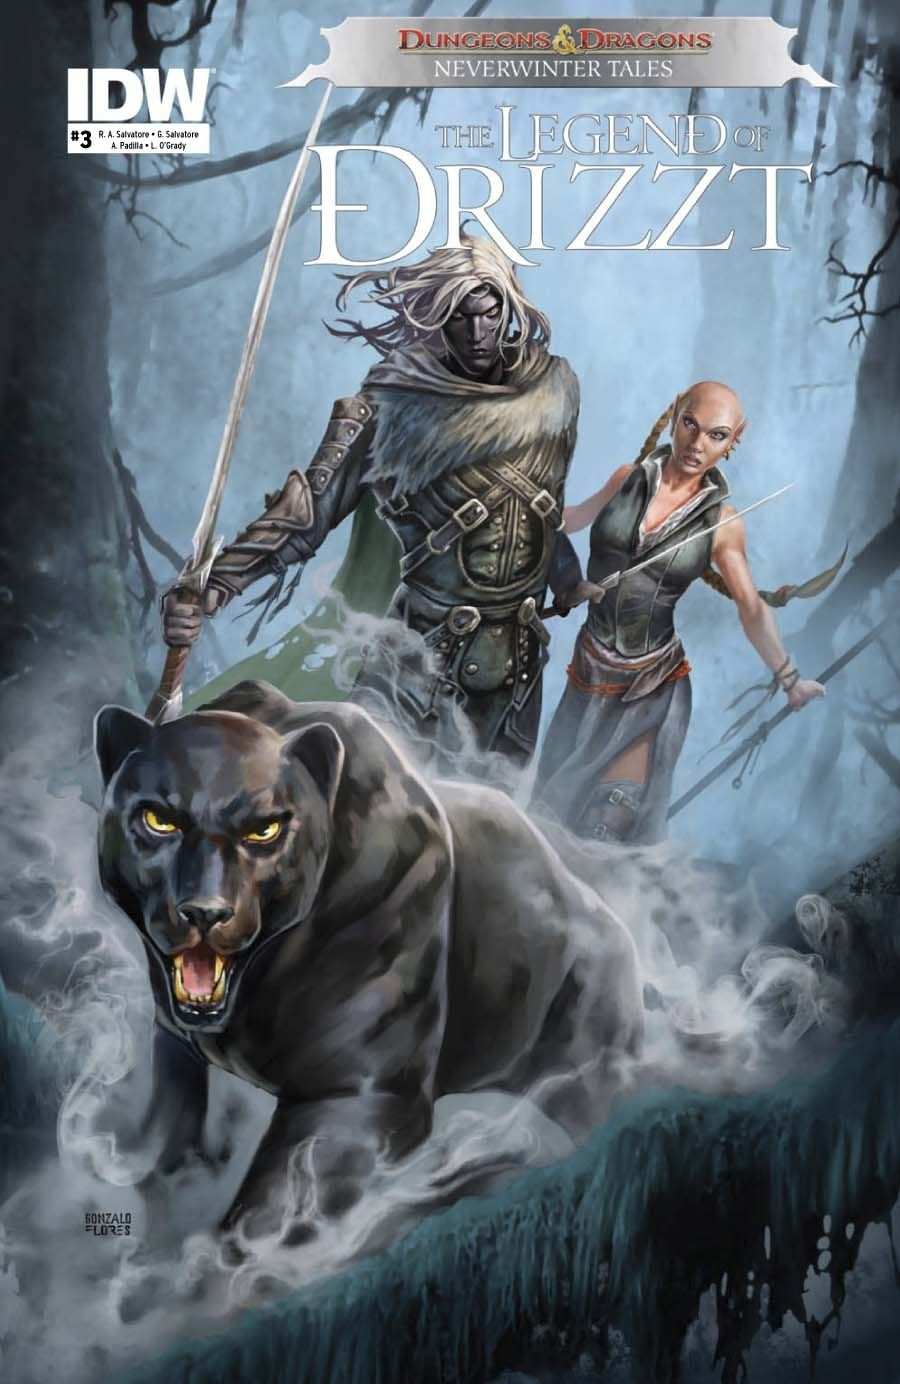 Dungeons & Dragons: Drizzt #3 - IDW Publishing | Legend of